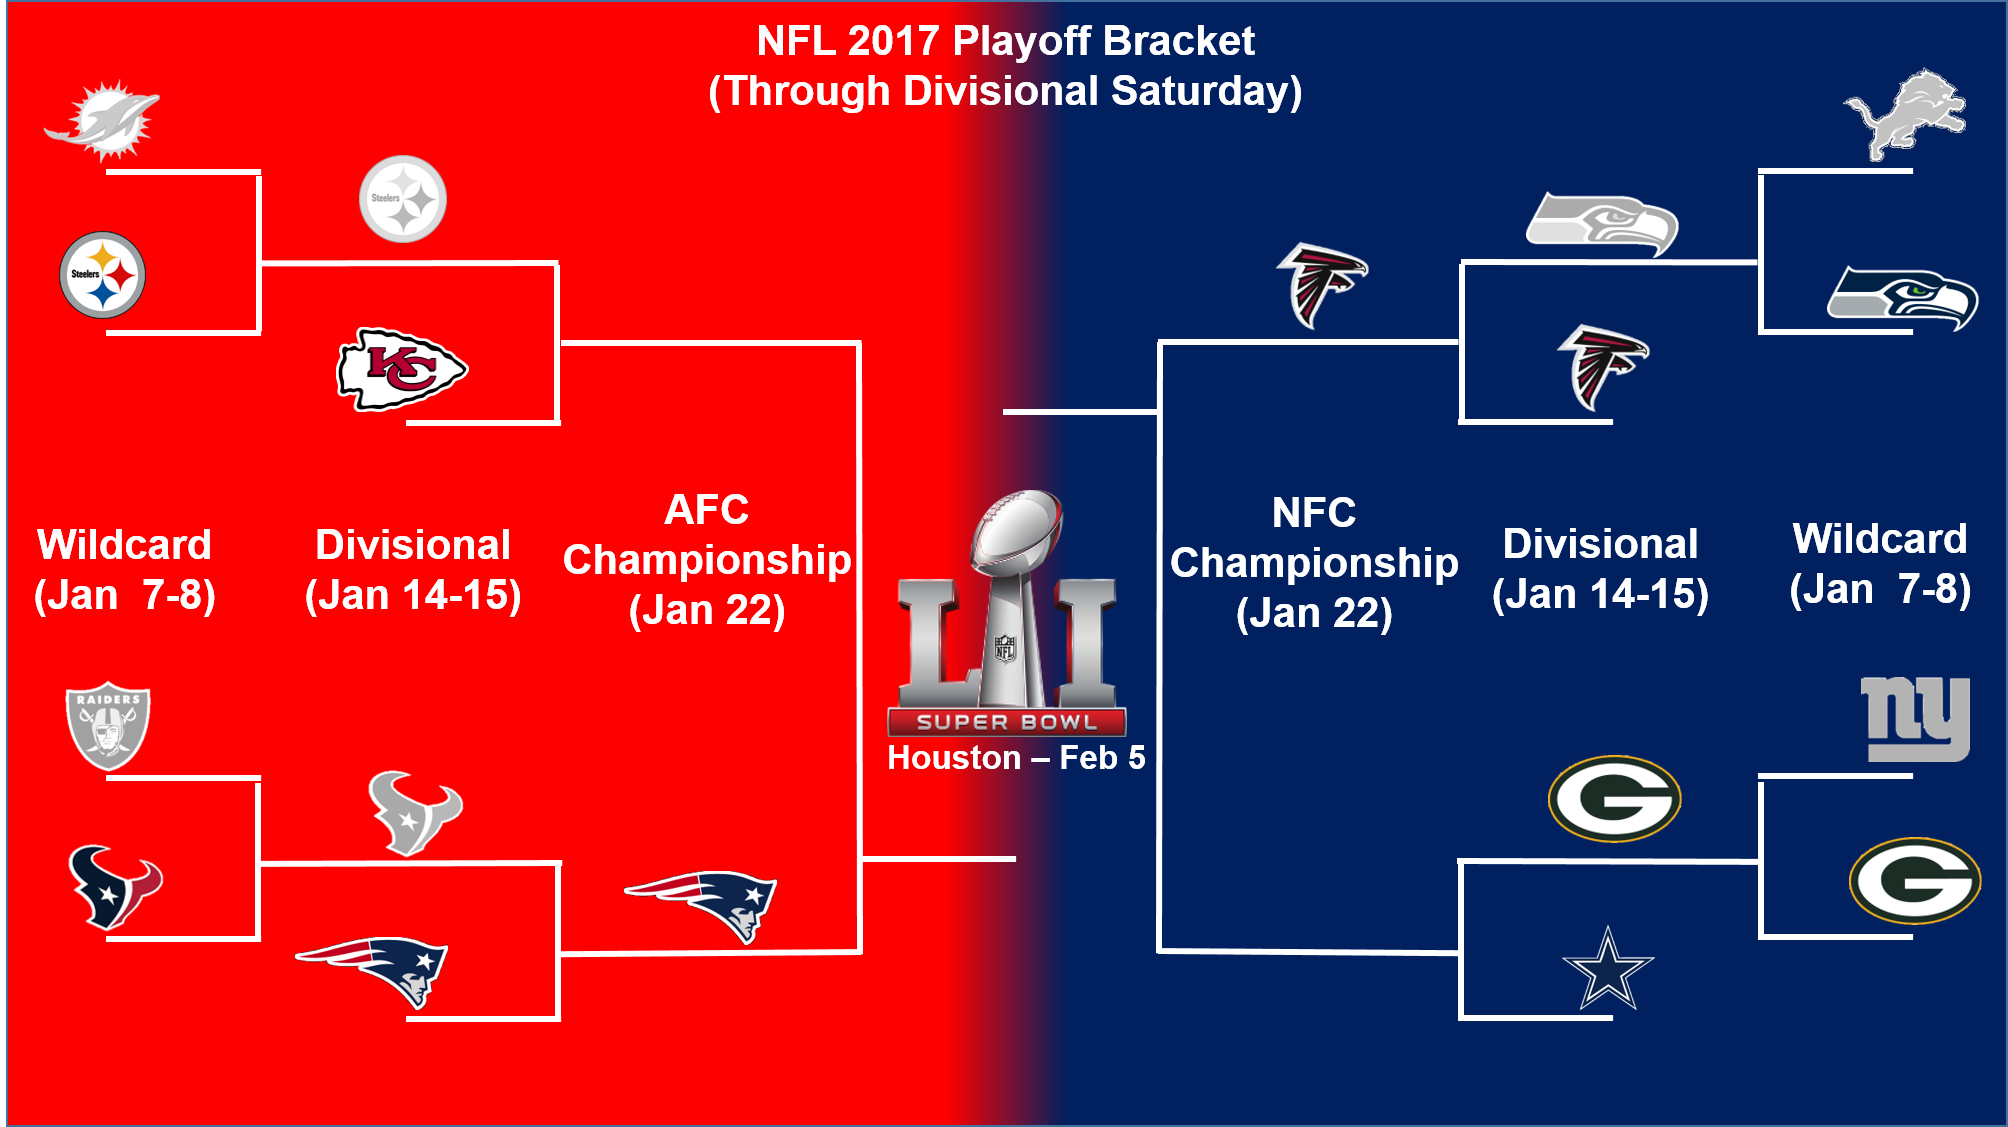 photo relating to Nfl Playoff Bracket Printable referred to as A Nfl Playoff Bracket